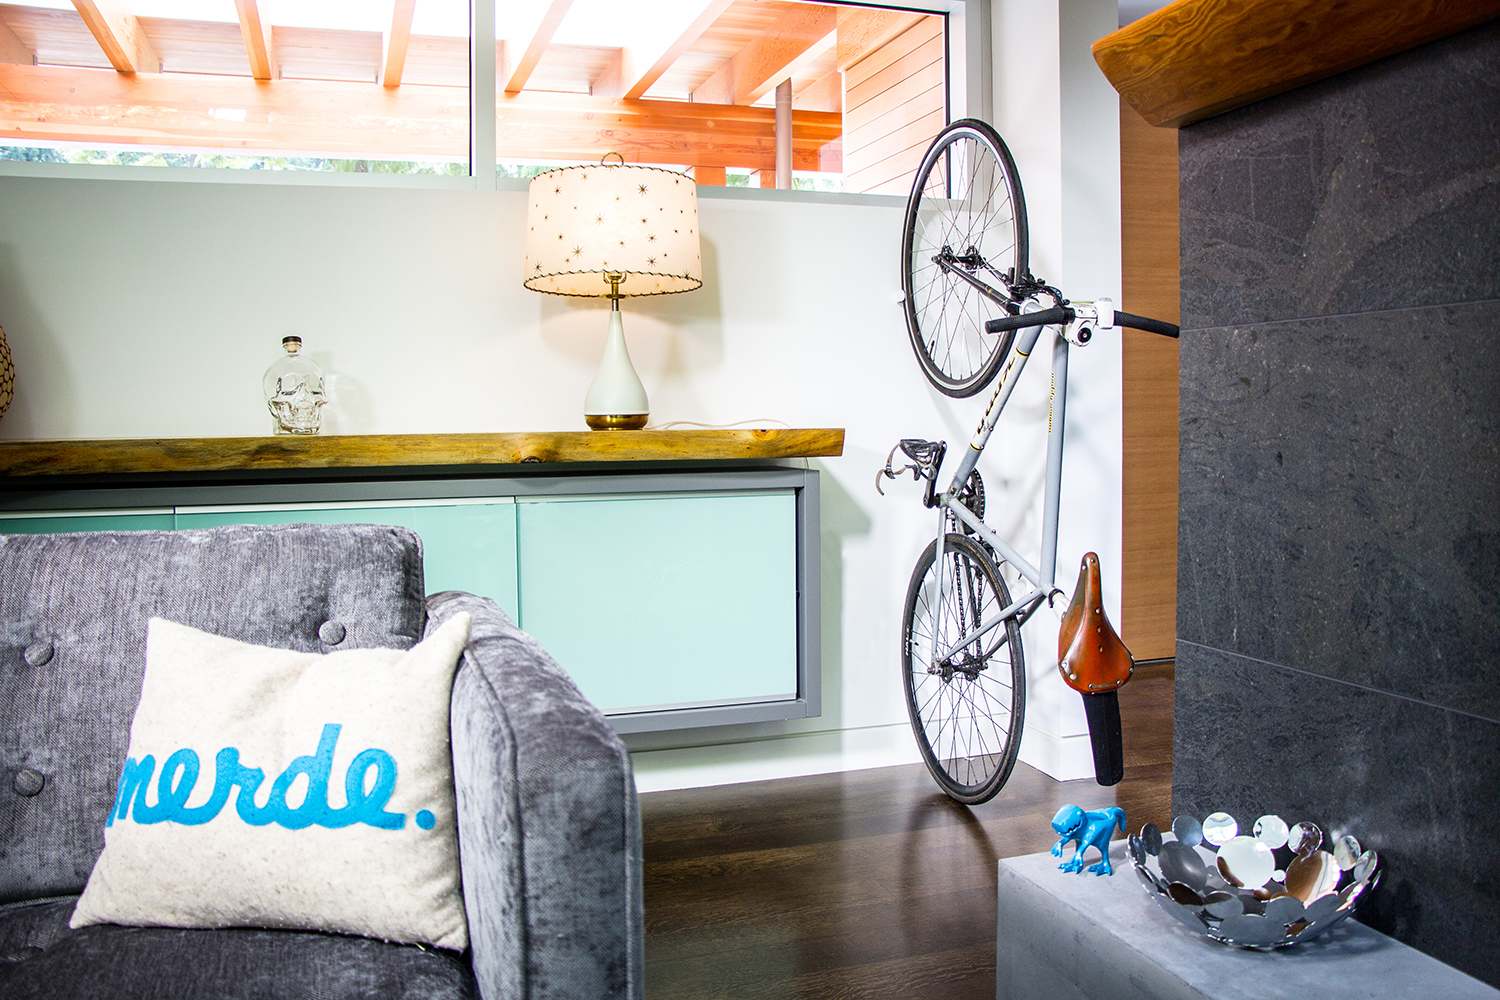 A white CLUG, which is a bike storage clip that mounts to a wall, is storing a bicycle upright in a small apartment.